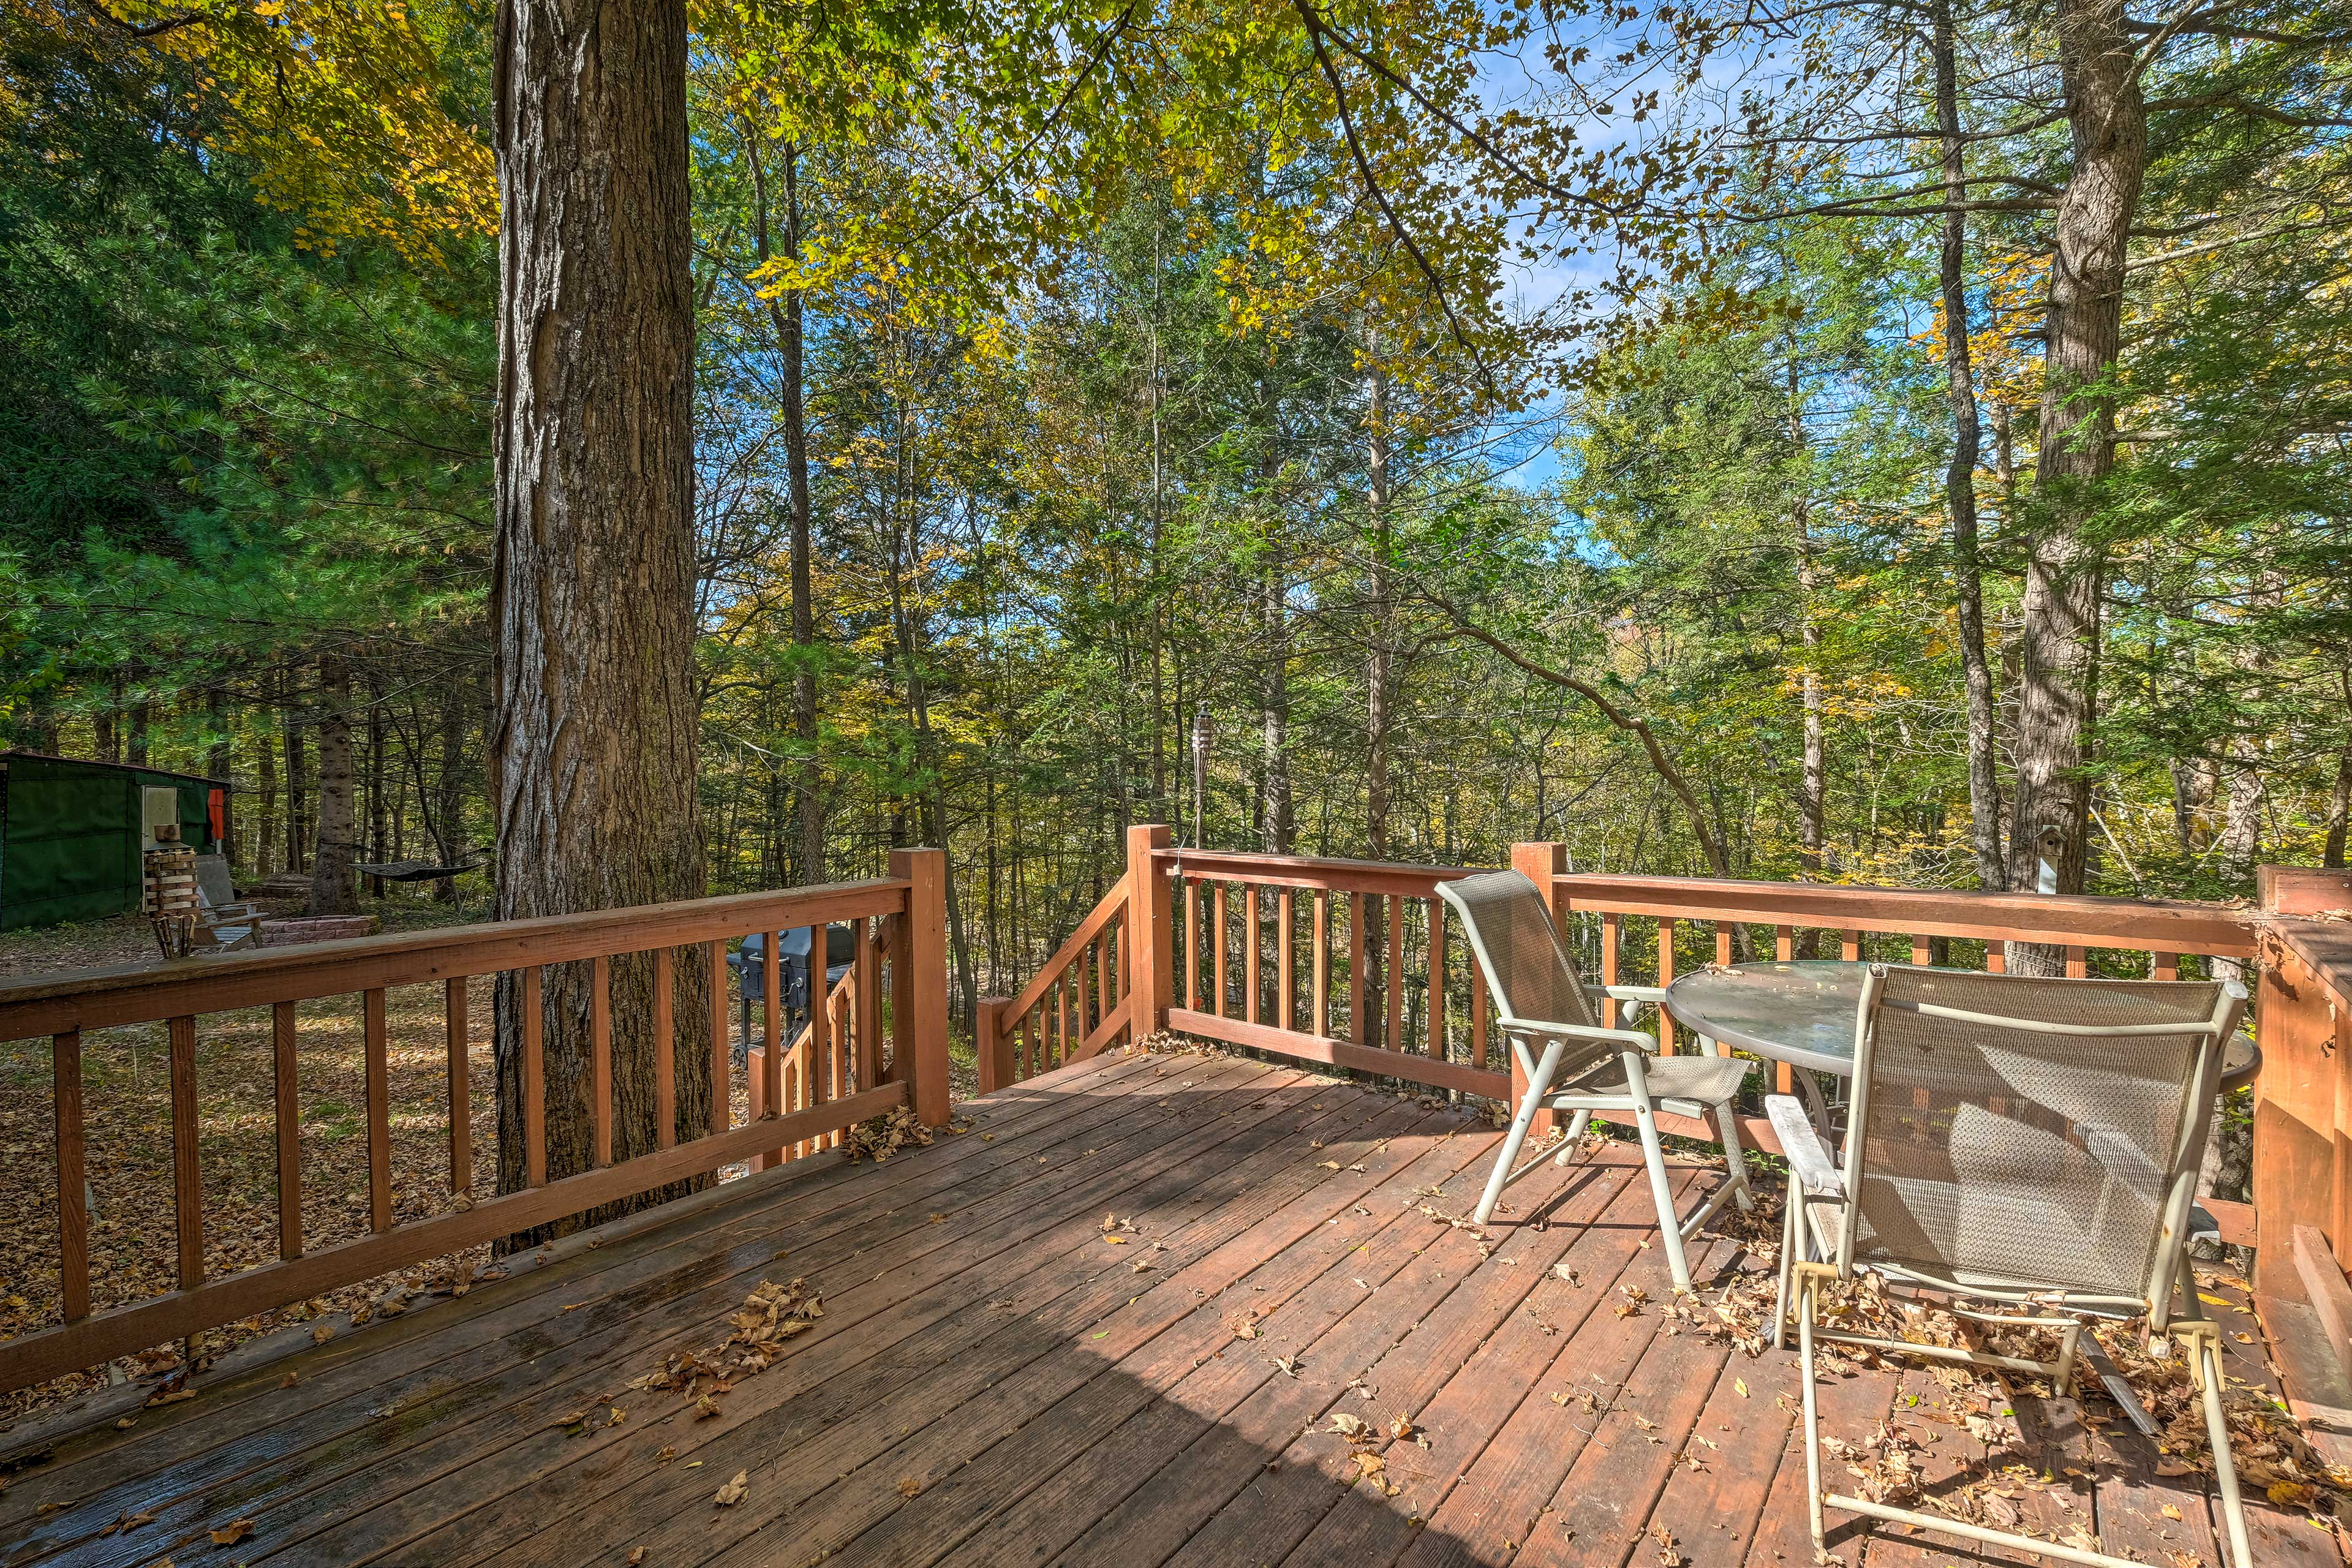 The large deck is a great place to spend a summer day!